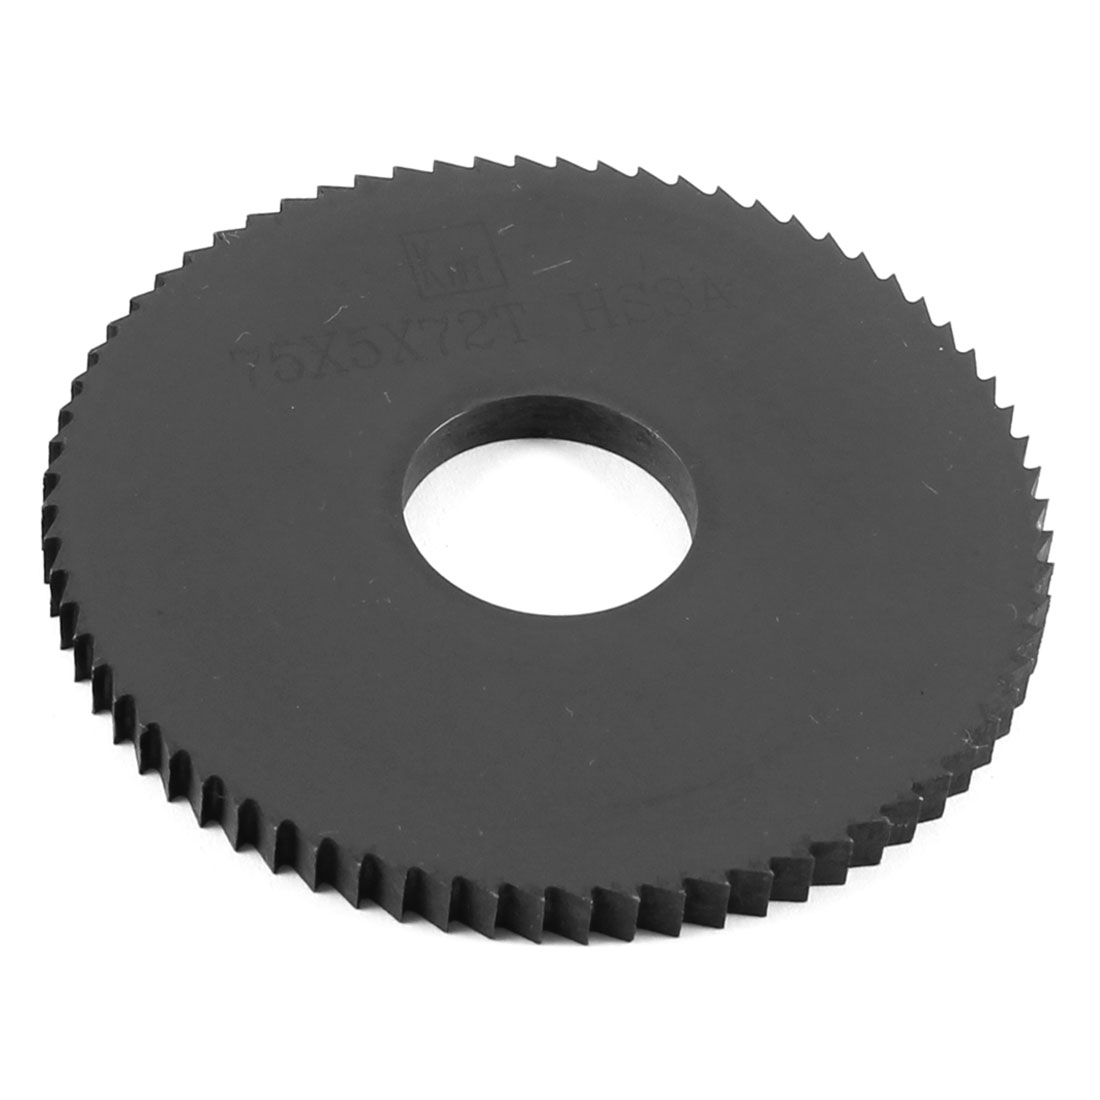 Black HSS 72 Teeth 75mm x 5mm x 22mm Slitting Saw Blade Repair Parts